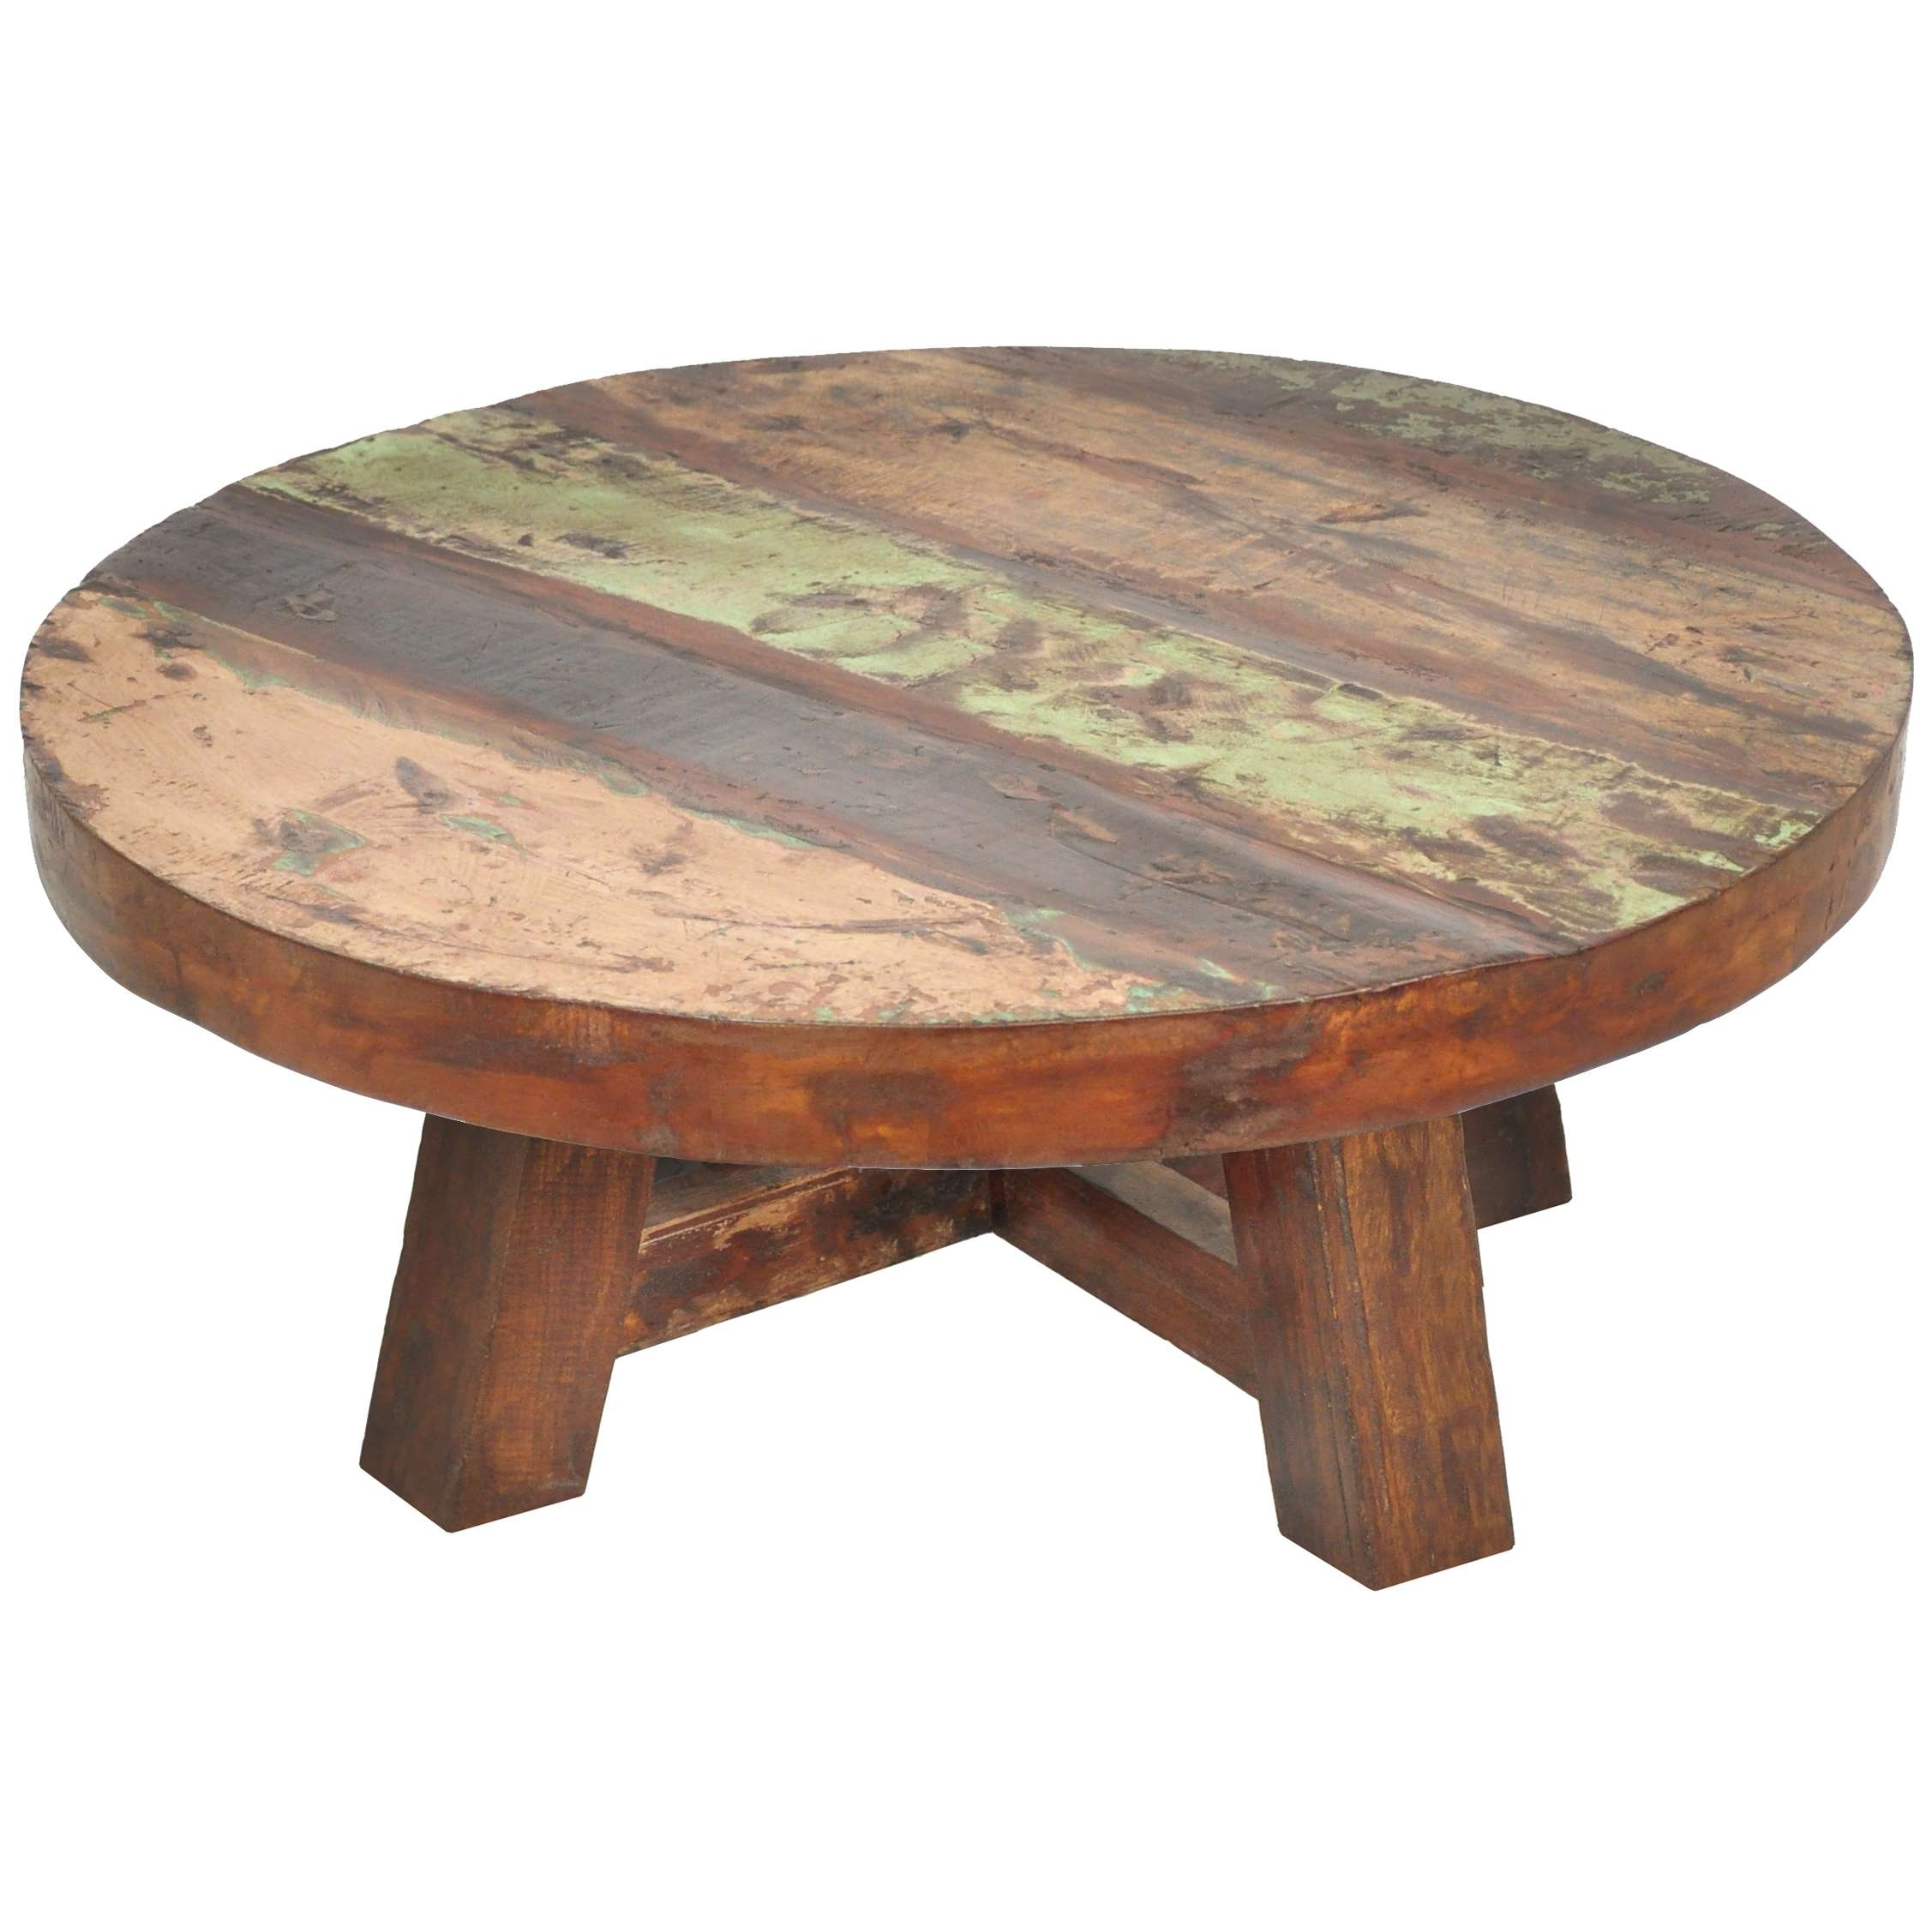 2018 Latest Small Round Coffee Tables